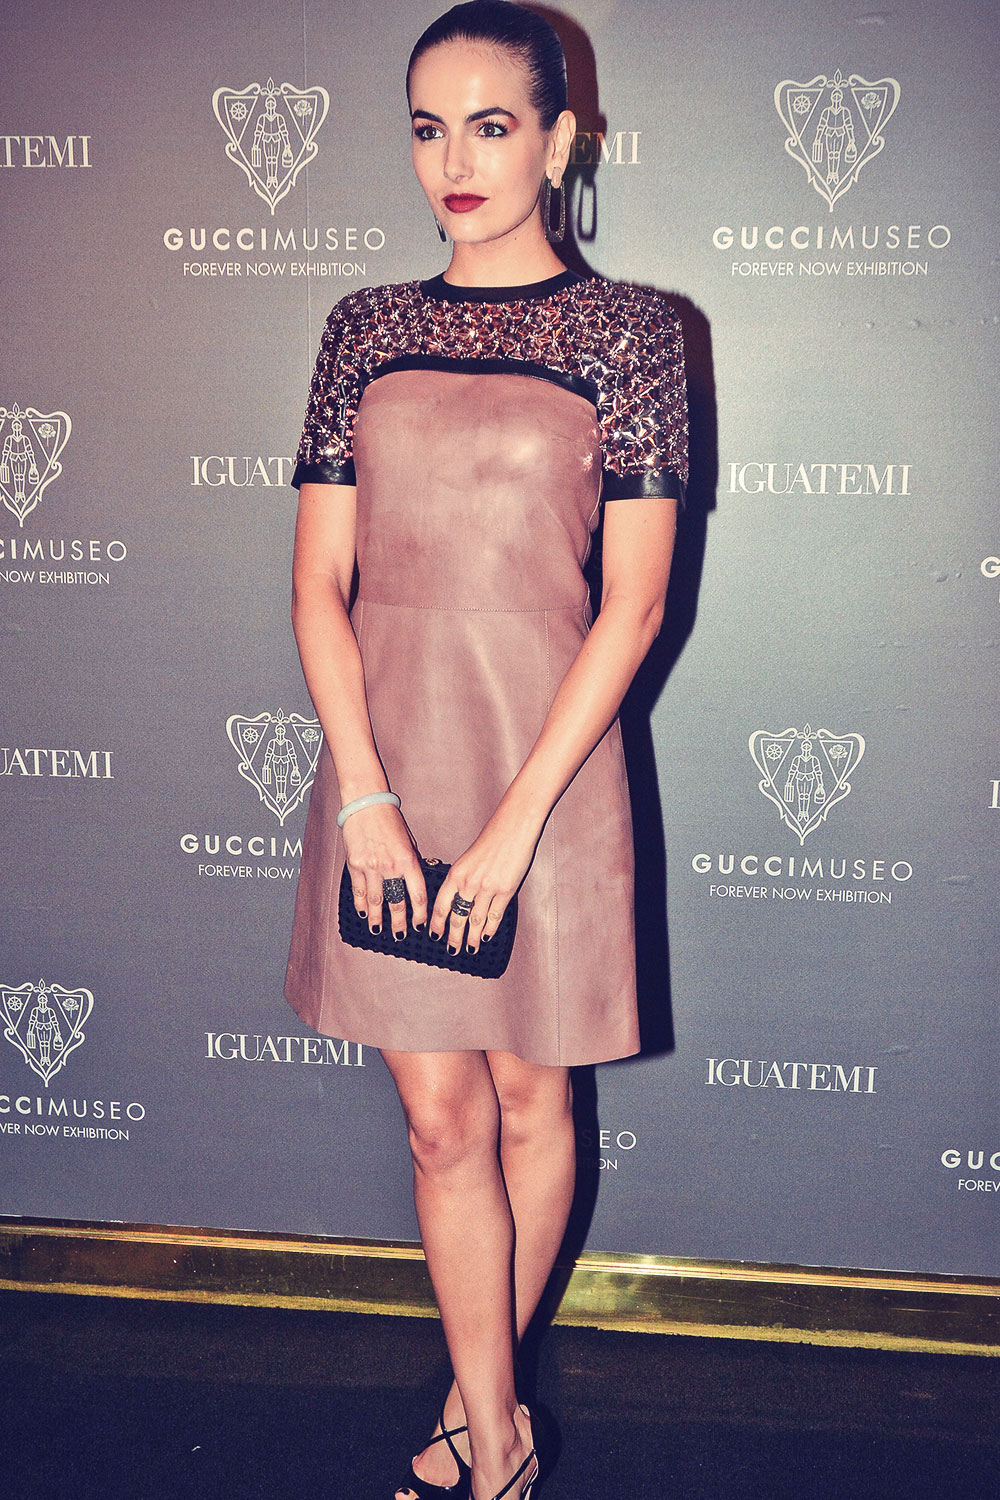 Camilla Belle attends Gucci Museo Forever Exhibit Opening